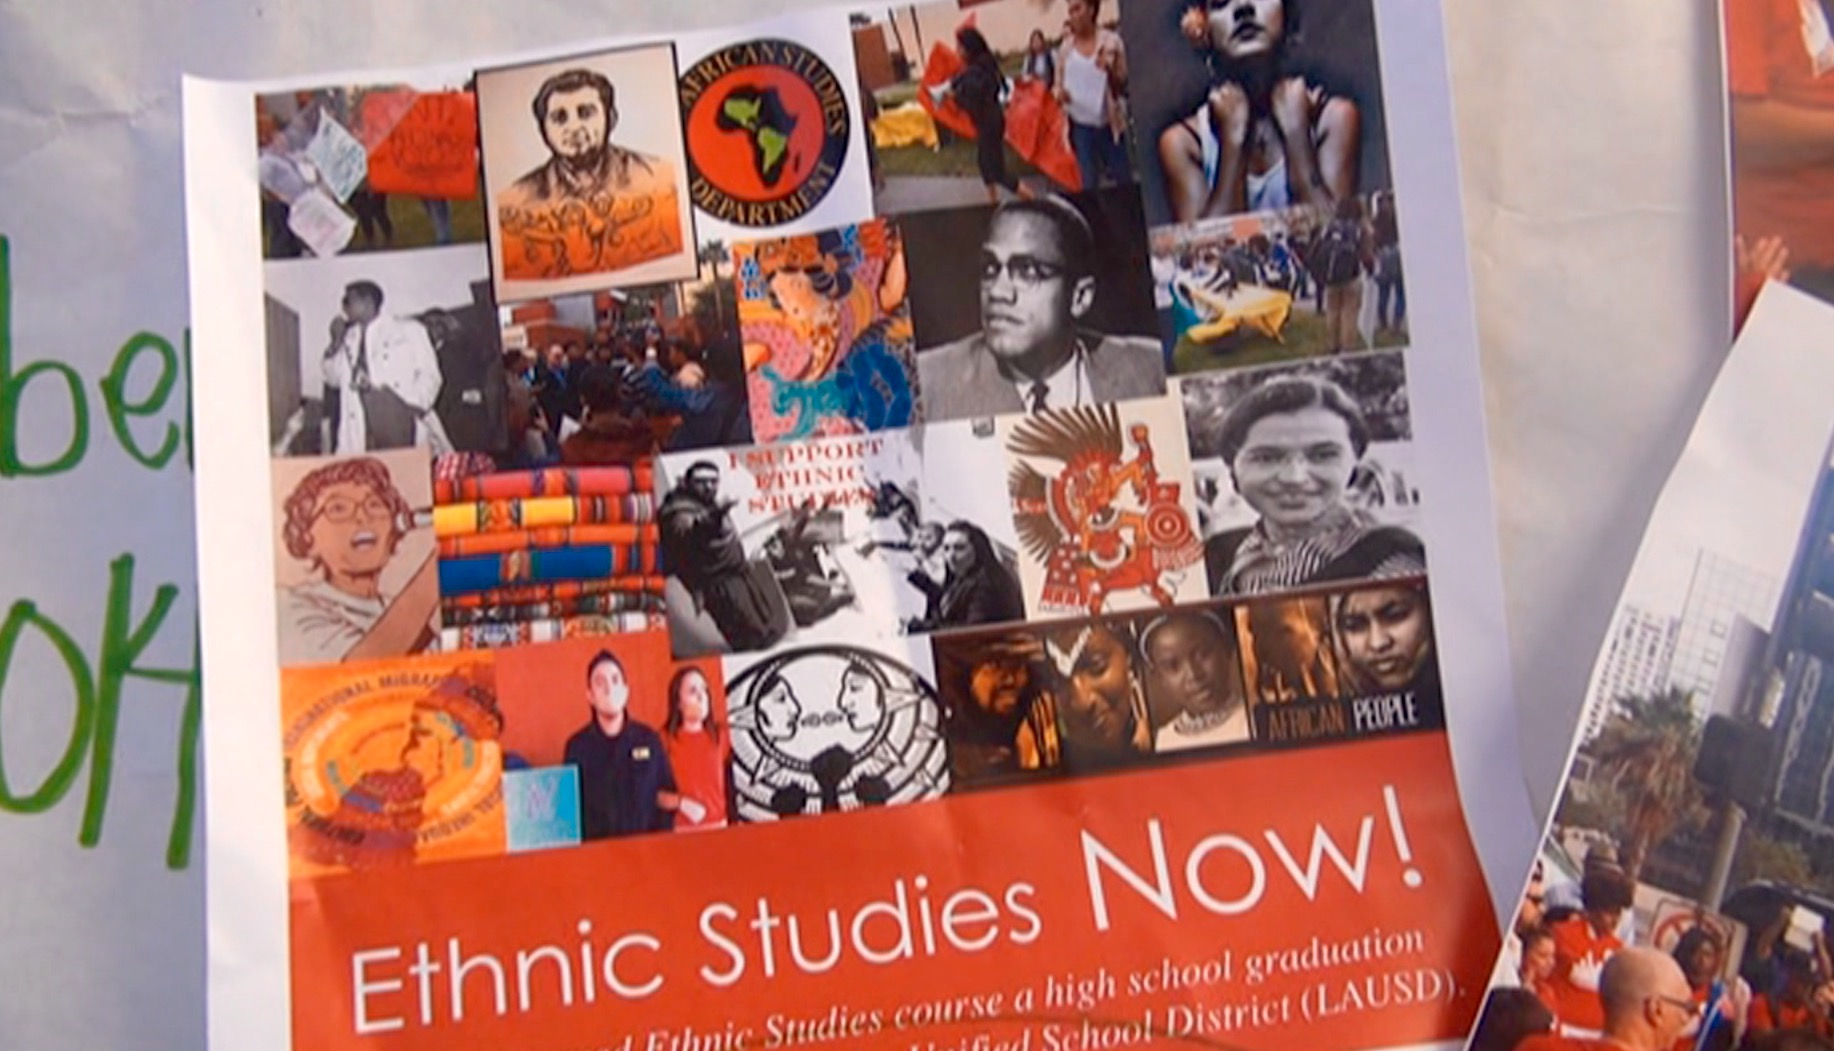 Myths And Misunderstandings Fuel Controversy Over Critical Race Theory